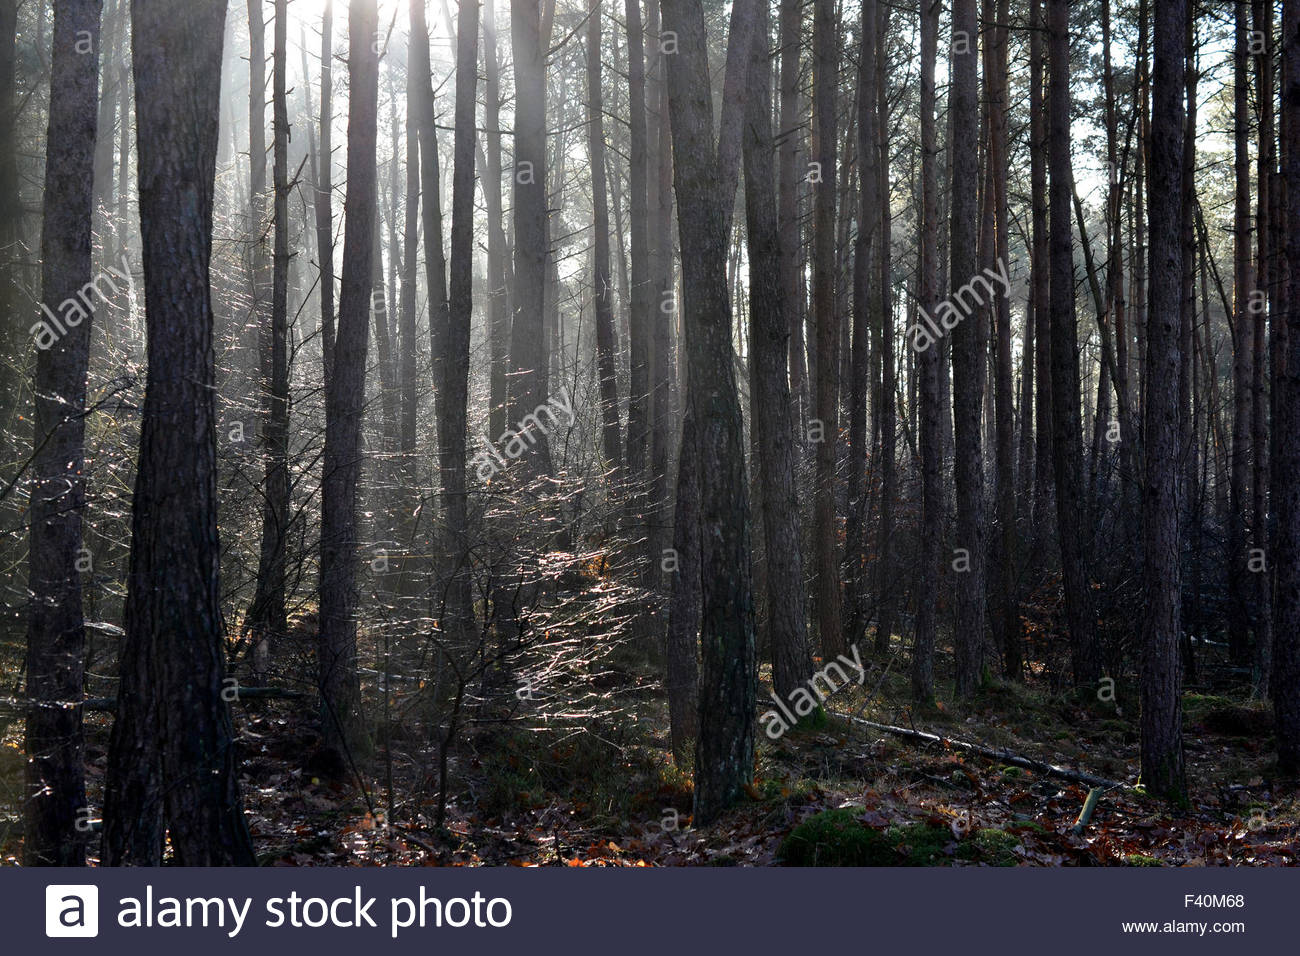 Mysticism with backlight. - Stock Image